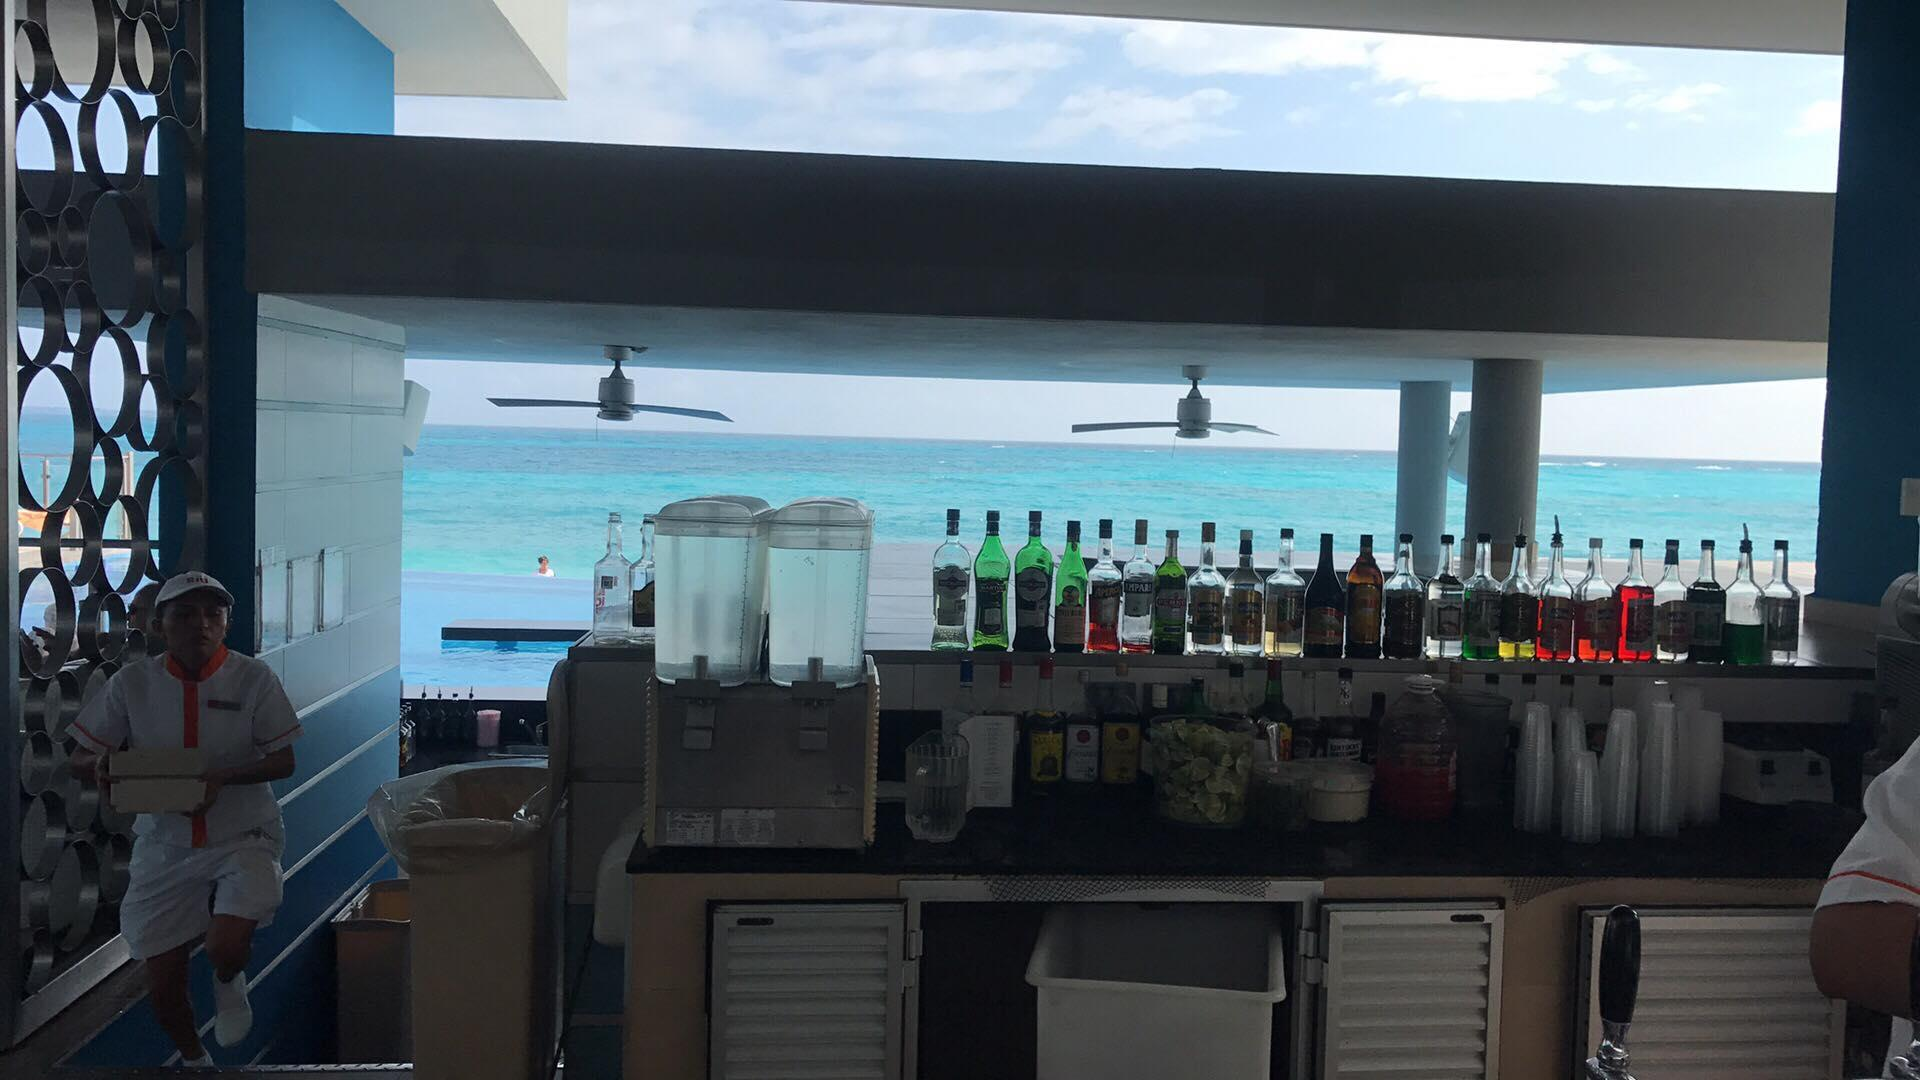 The view from the dry end of the swim up pool bar.